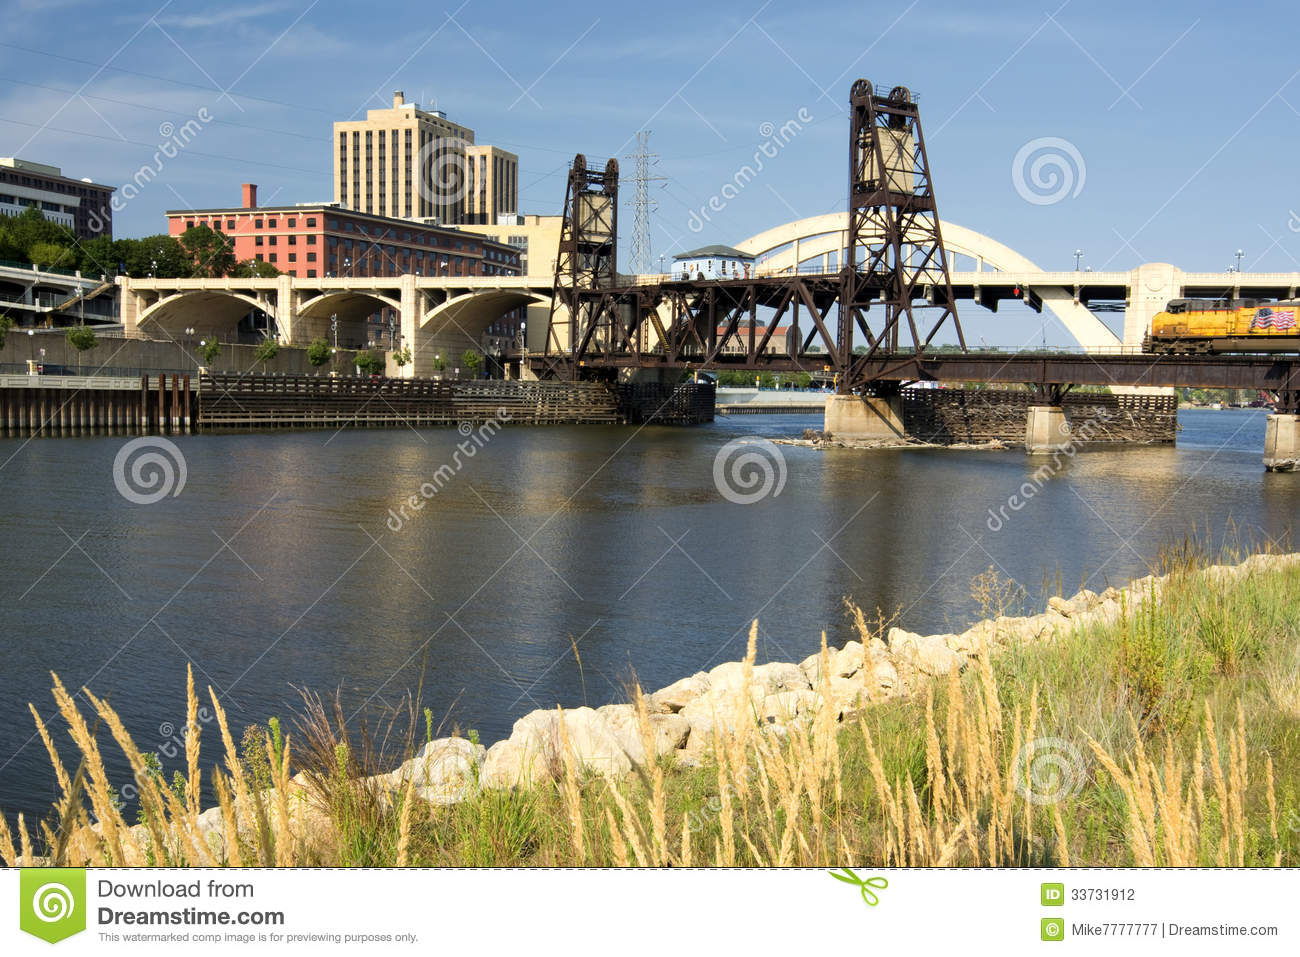 Railroad track and Robert Street Bridge. Downtown Saint Paul, Minnesota